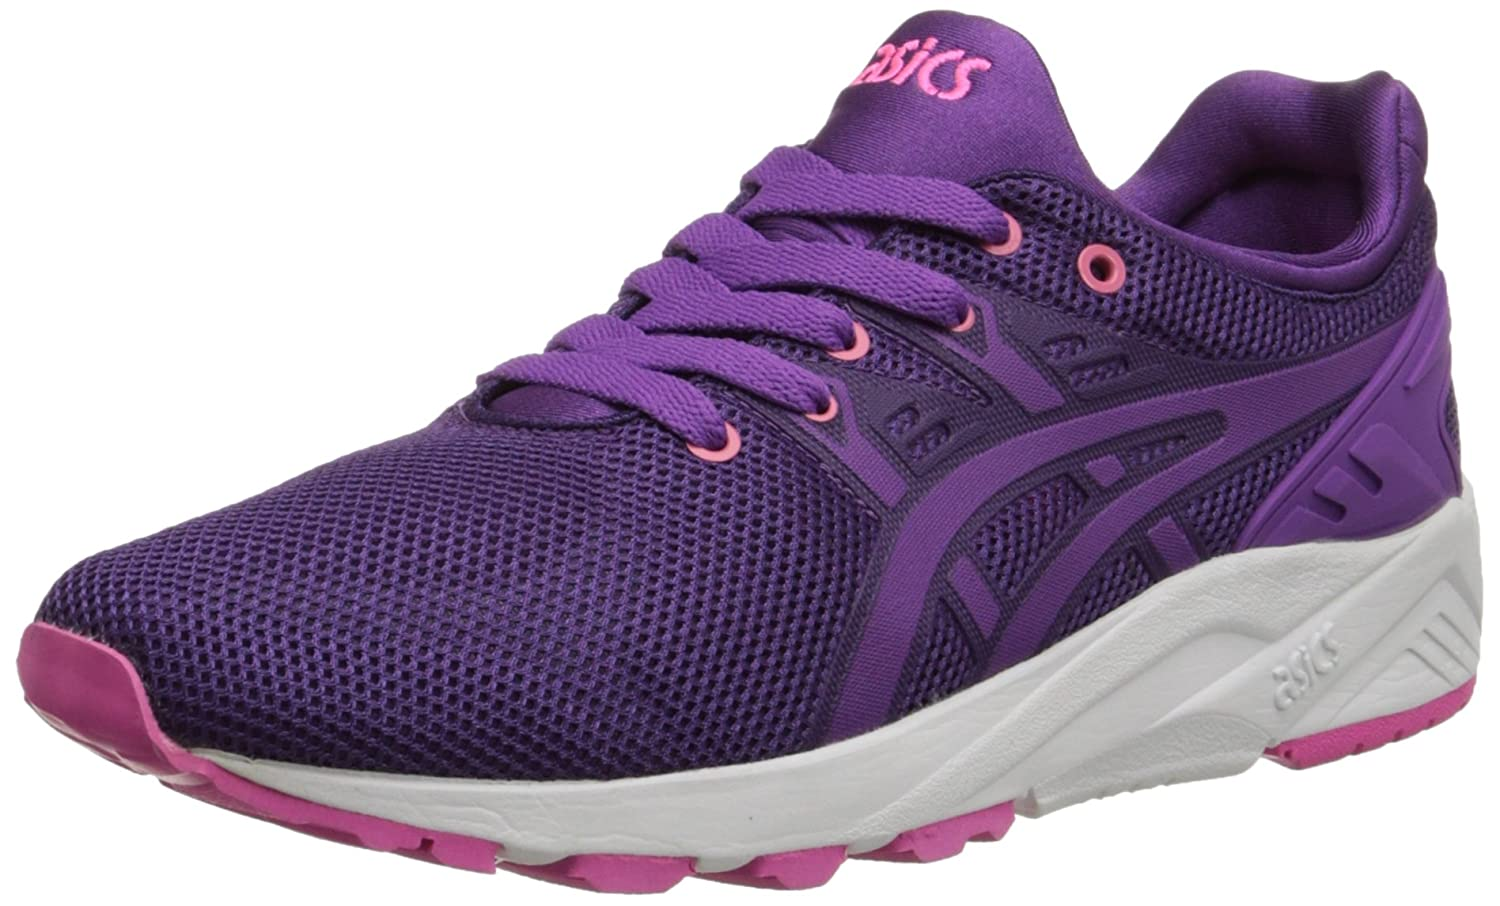 Asics Women's Gel Kayano Trainer Retro Running Shoe, Plum/Purple, 6 M US